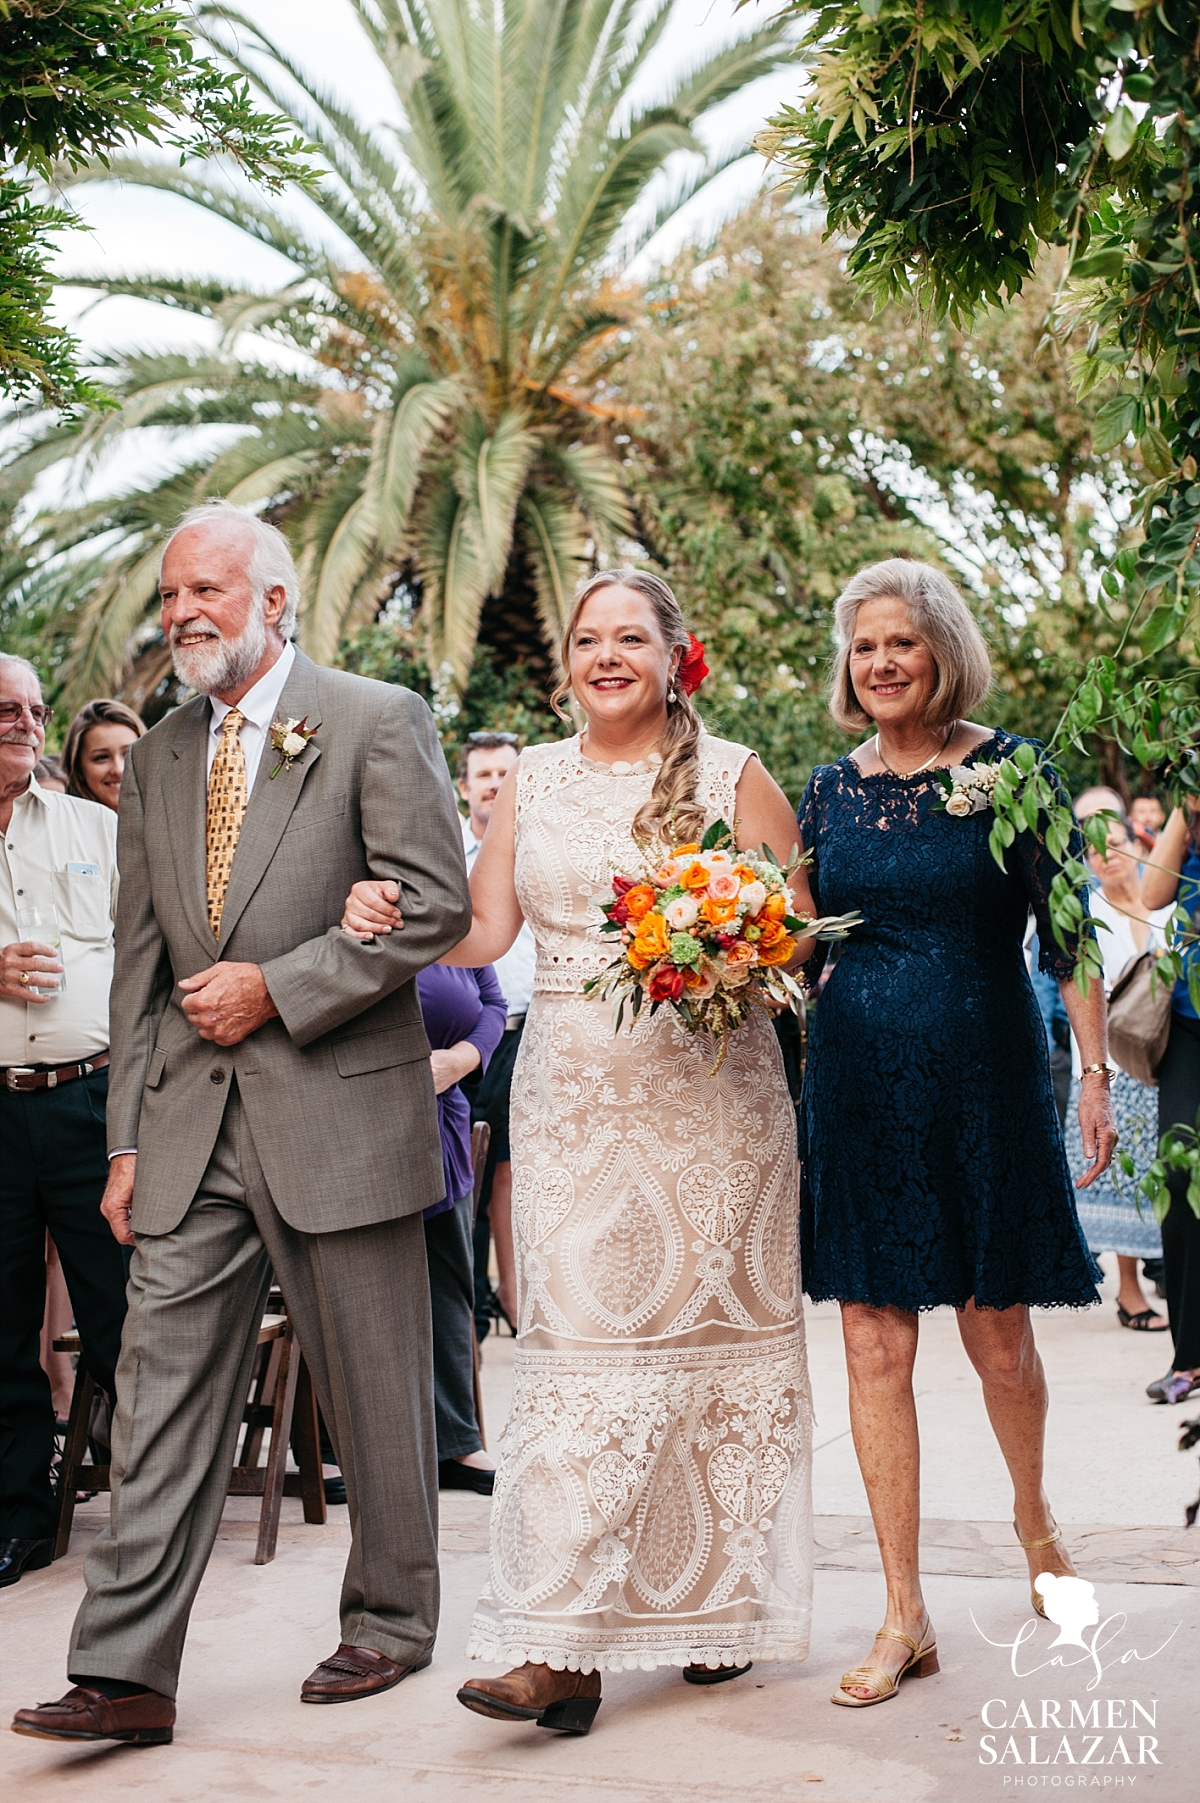 Beaming Winters bride walking the aisle with both parents - Carmen Salazar